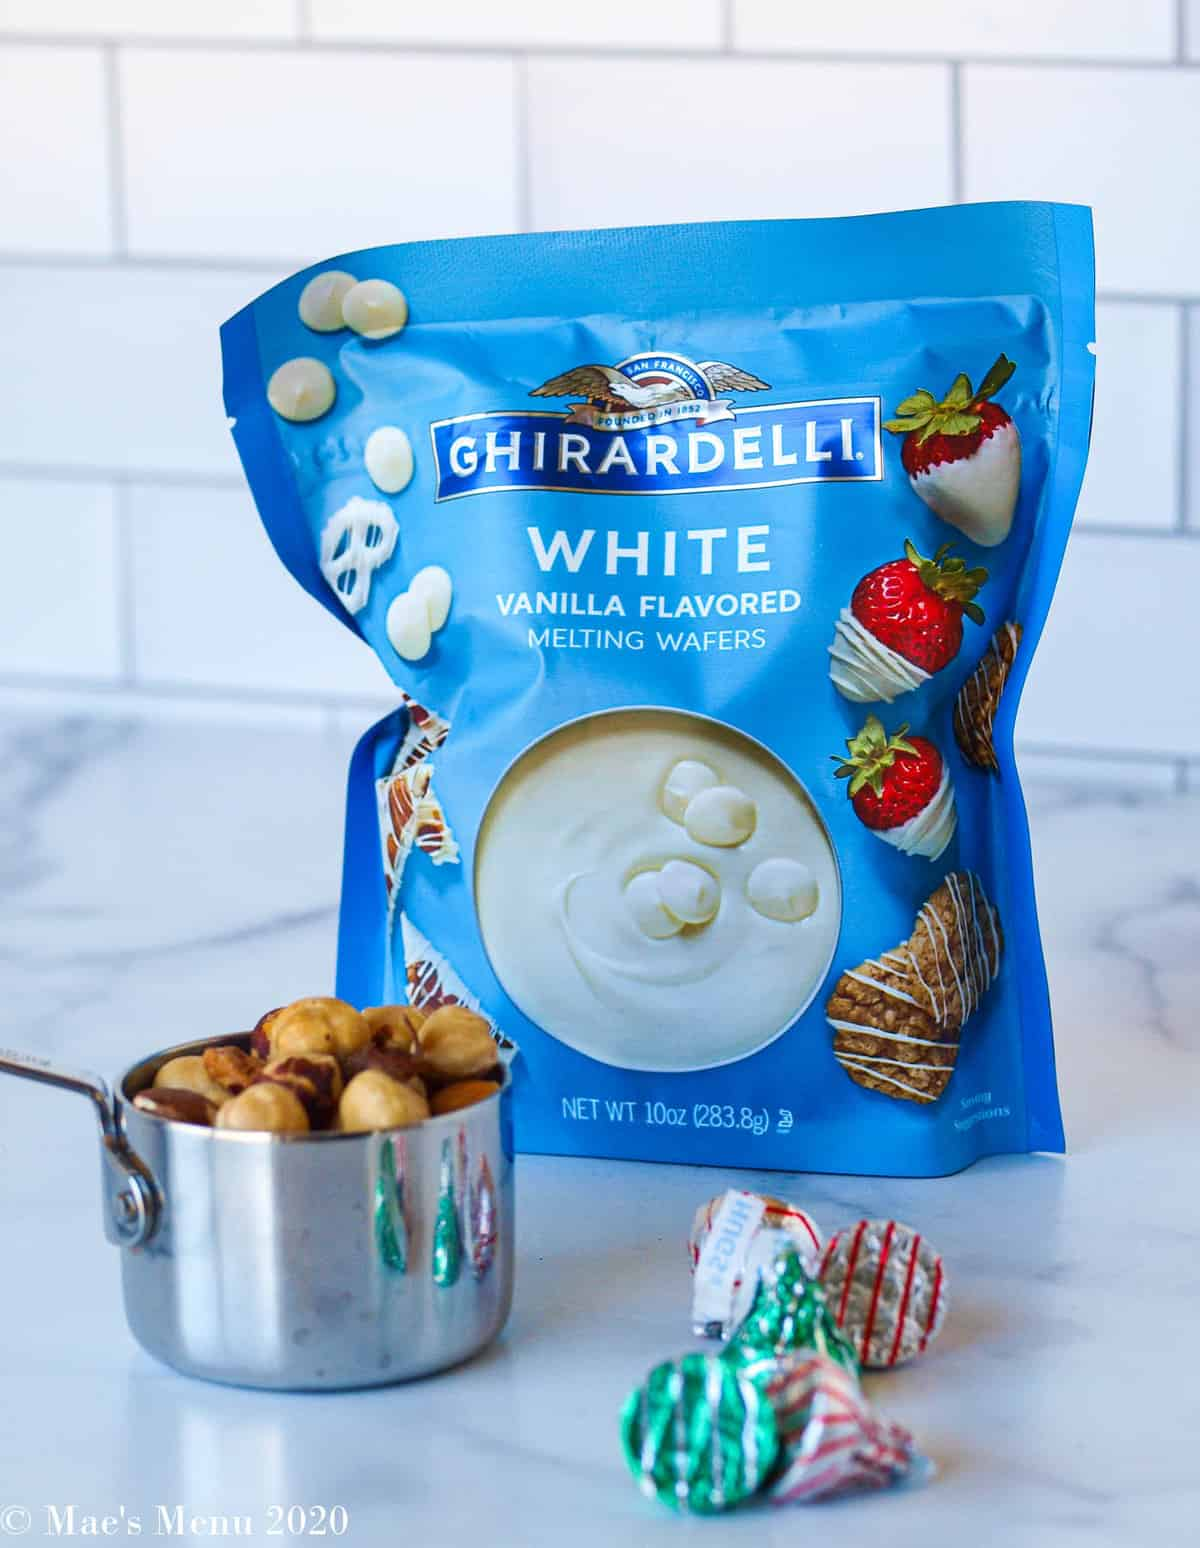 A bag of ghiradelli white chocolate discs, dry roasted hazelnuts, and hershey's hugs sitting on a counter